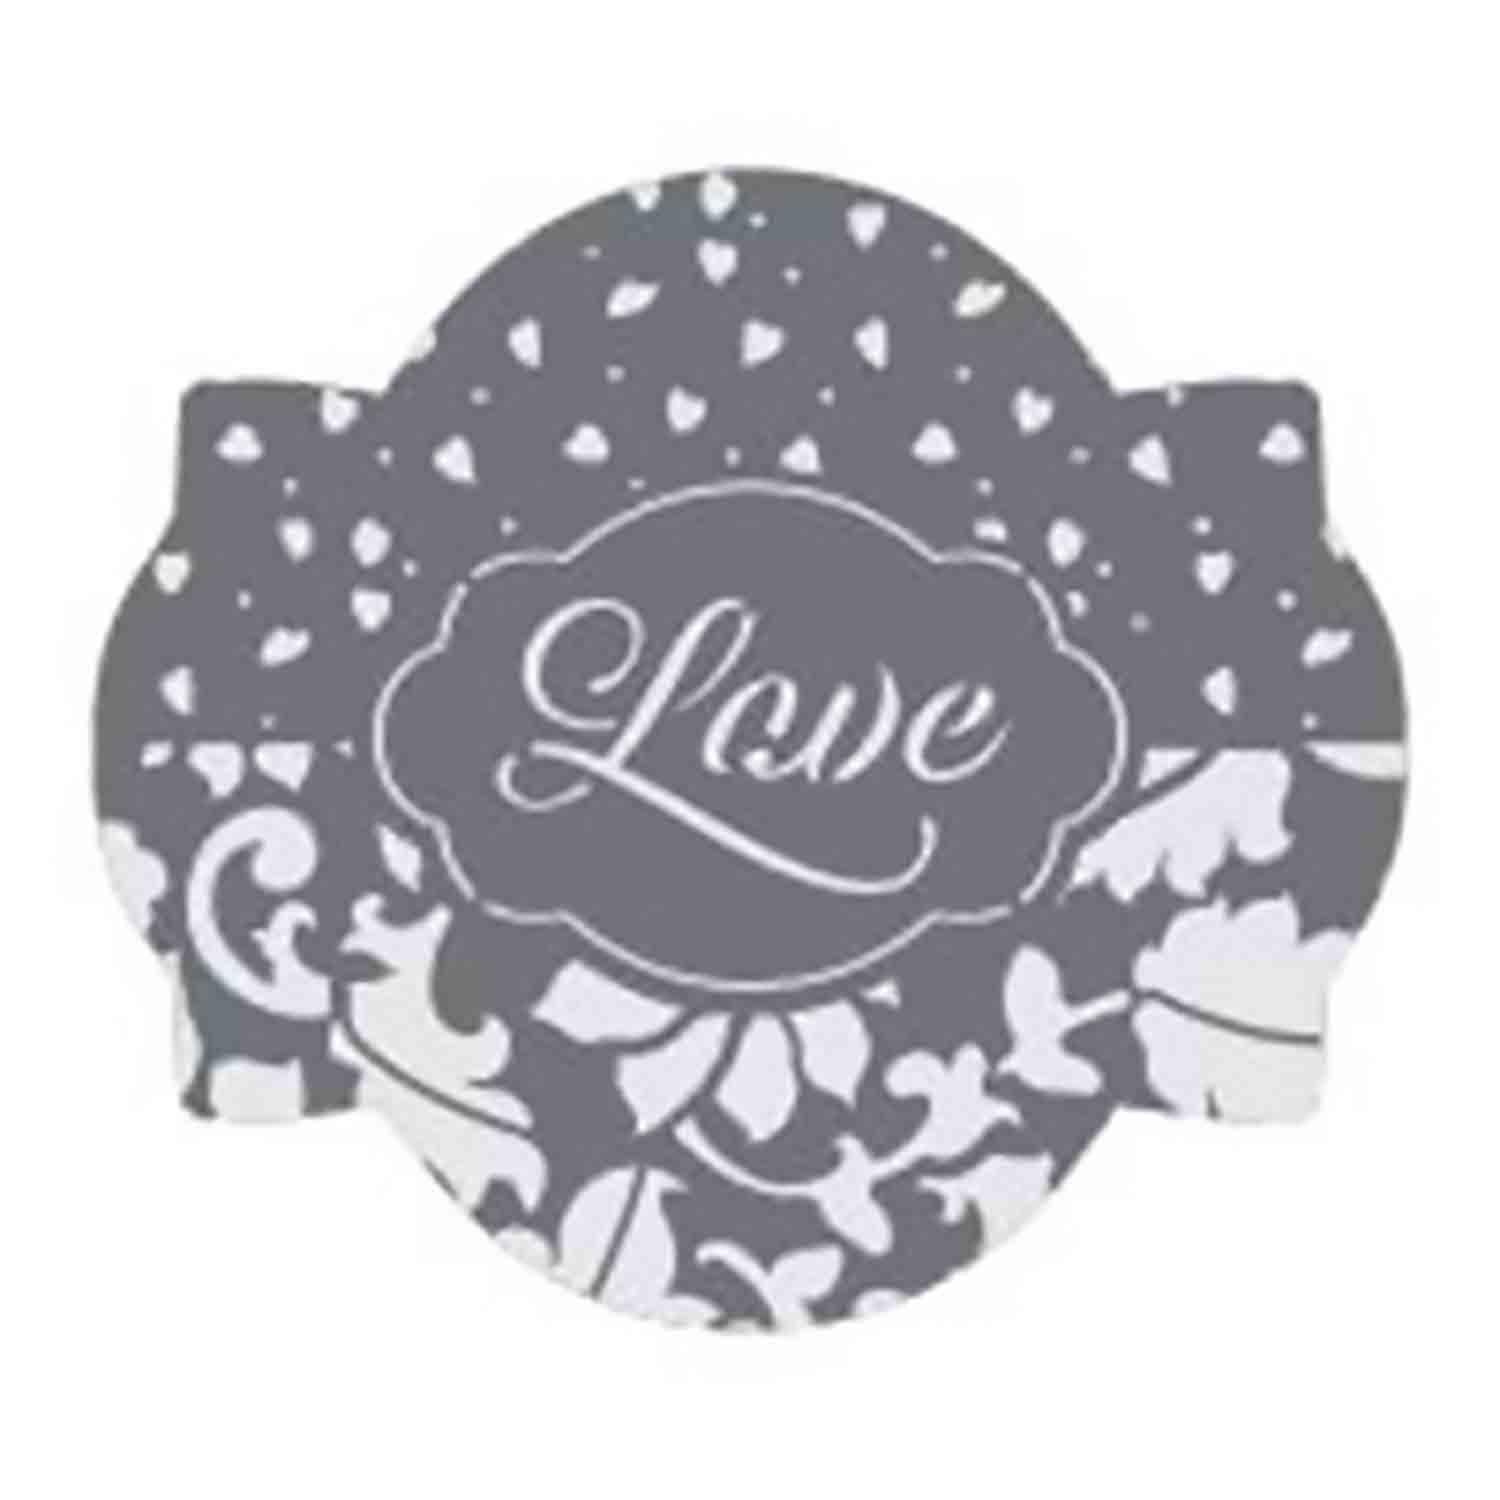 Love 2 Cookie Stencil Set by Julia M Usher